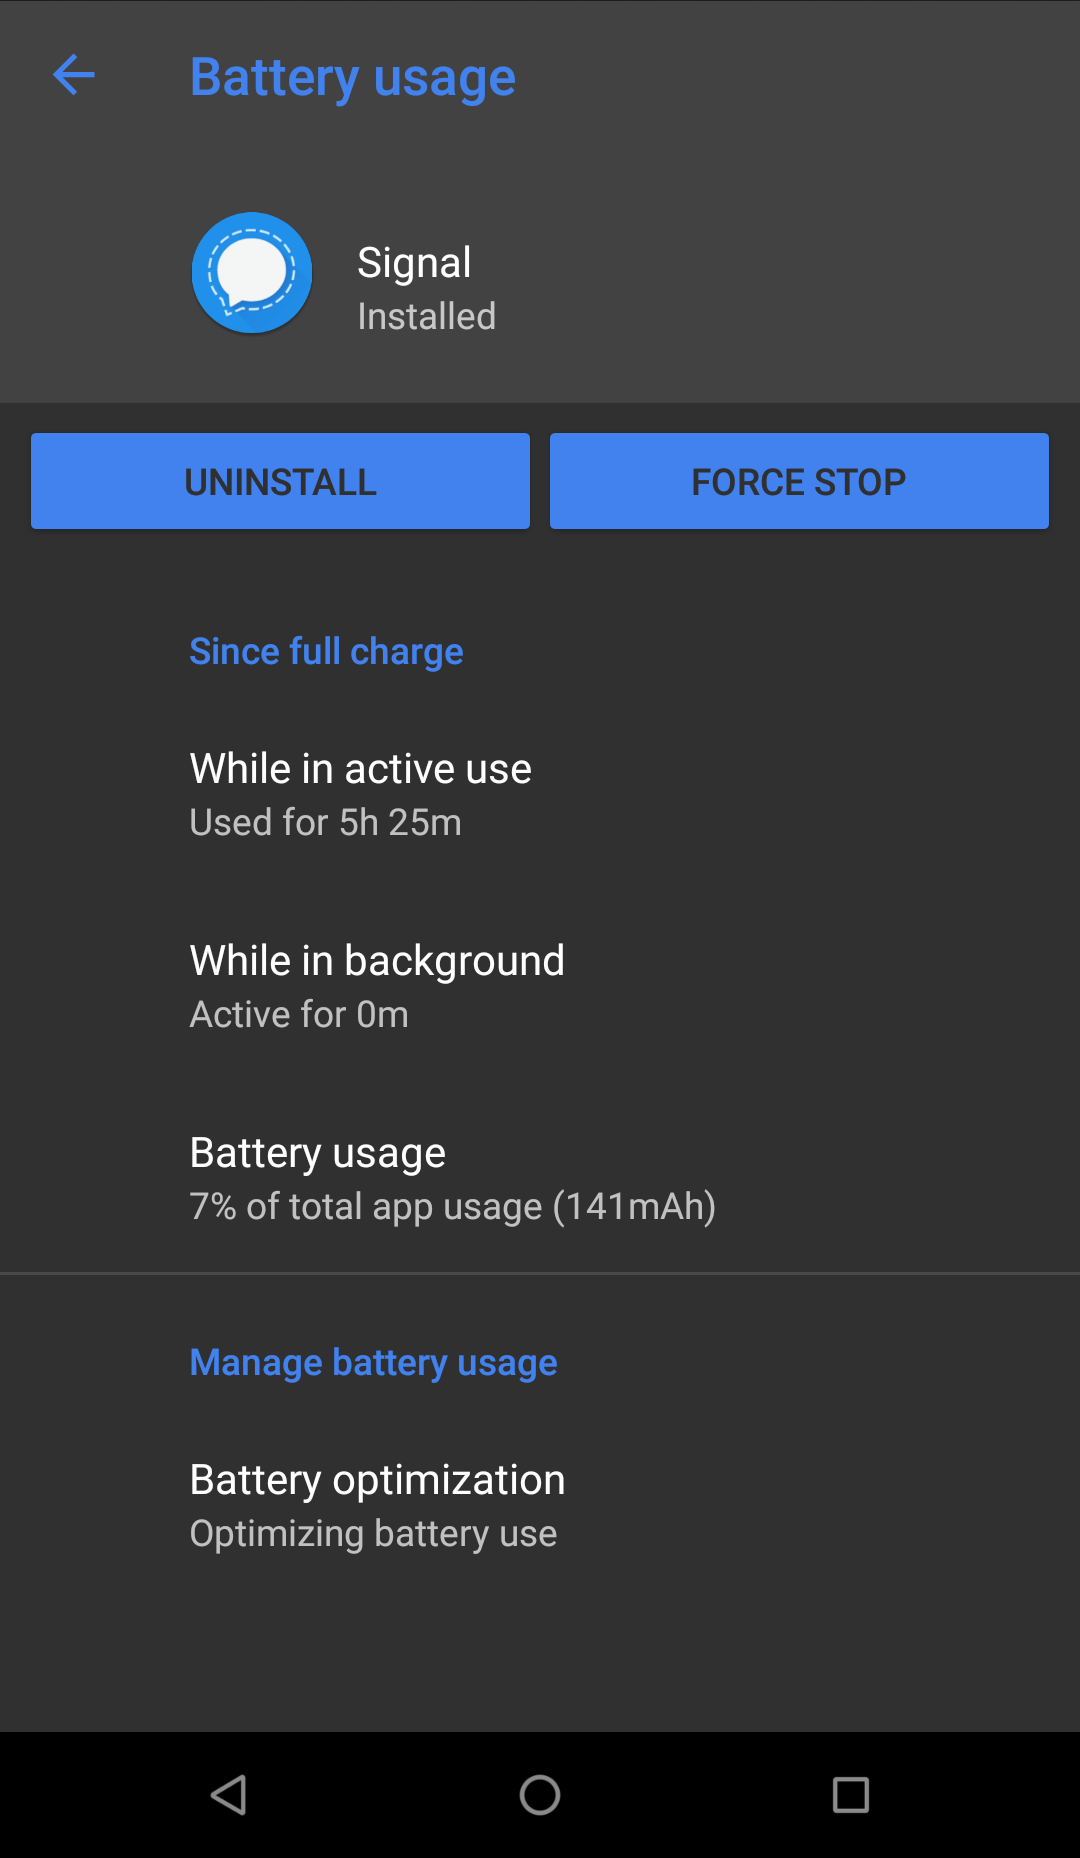 4 25 10 - Heavy battery drain even with minimal usage